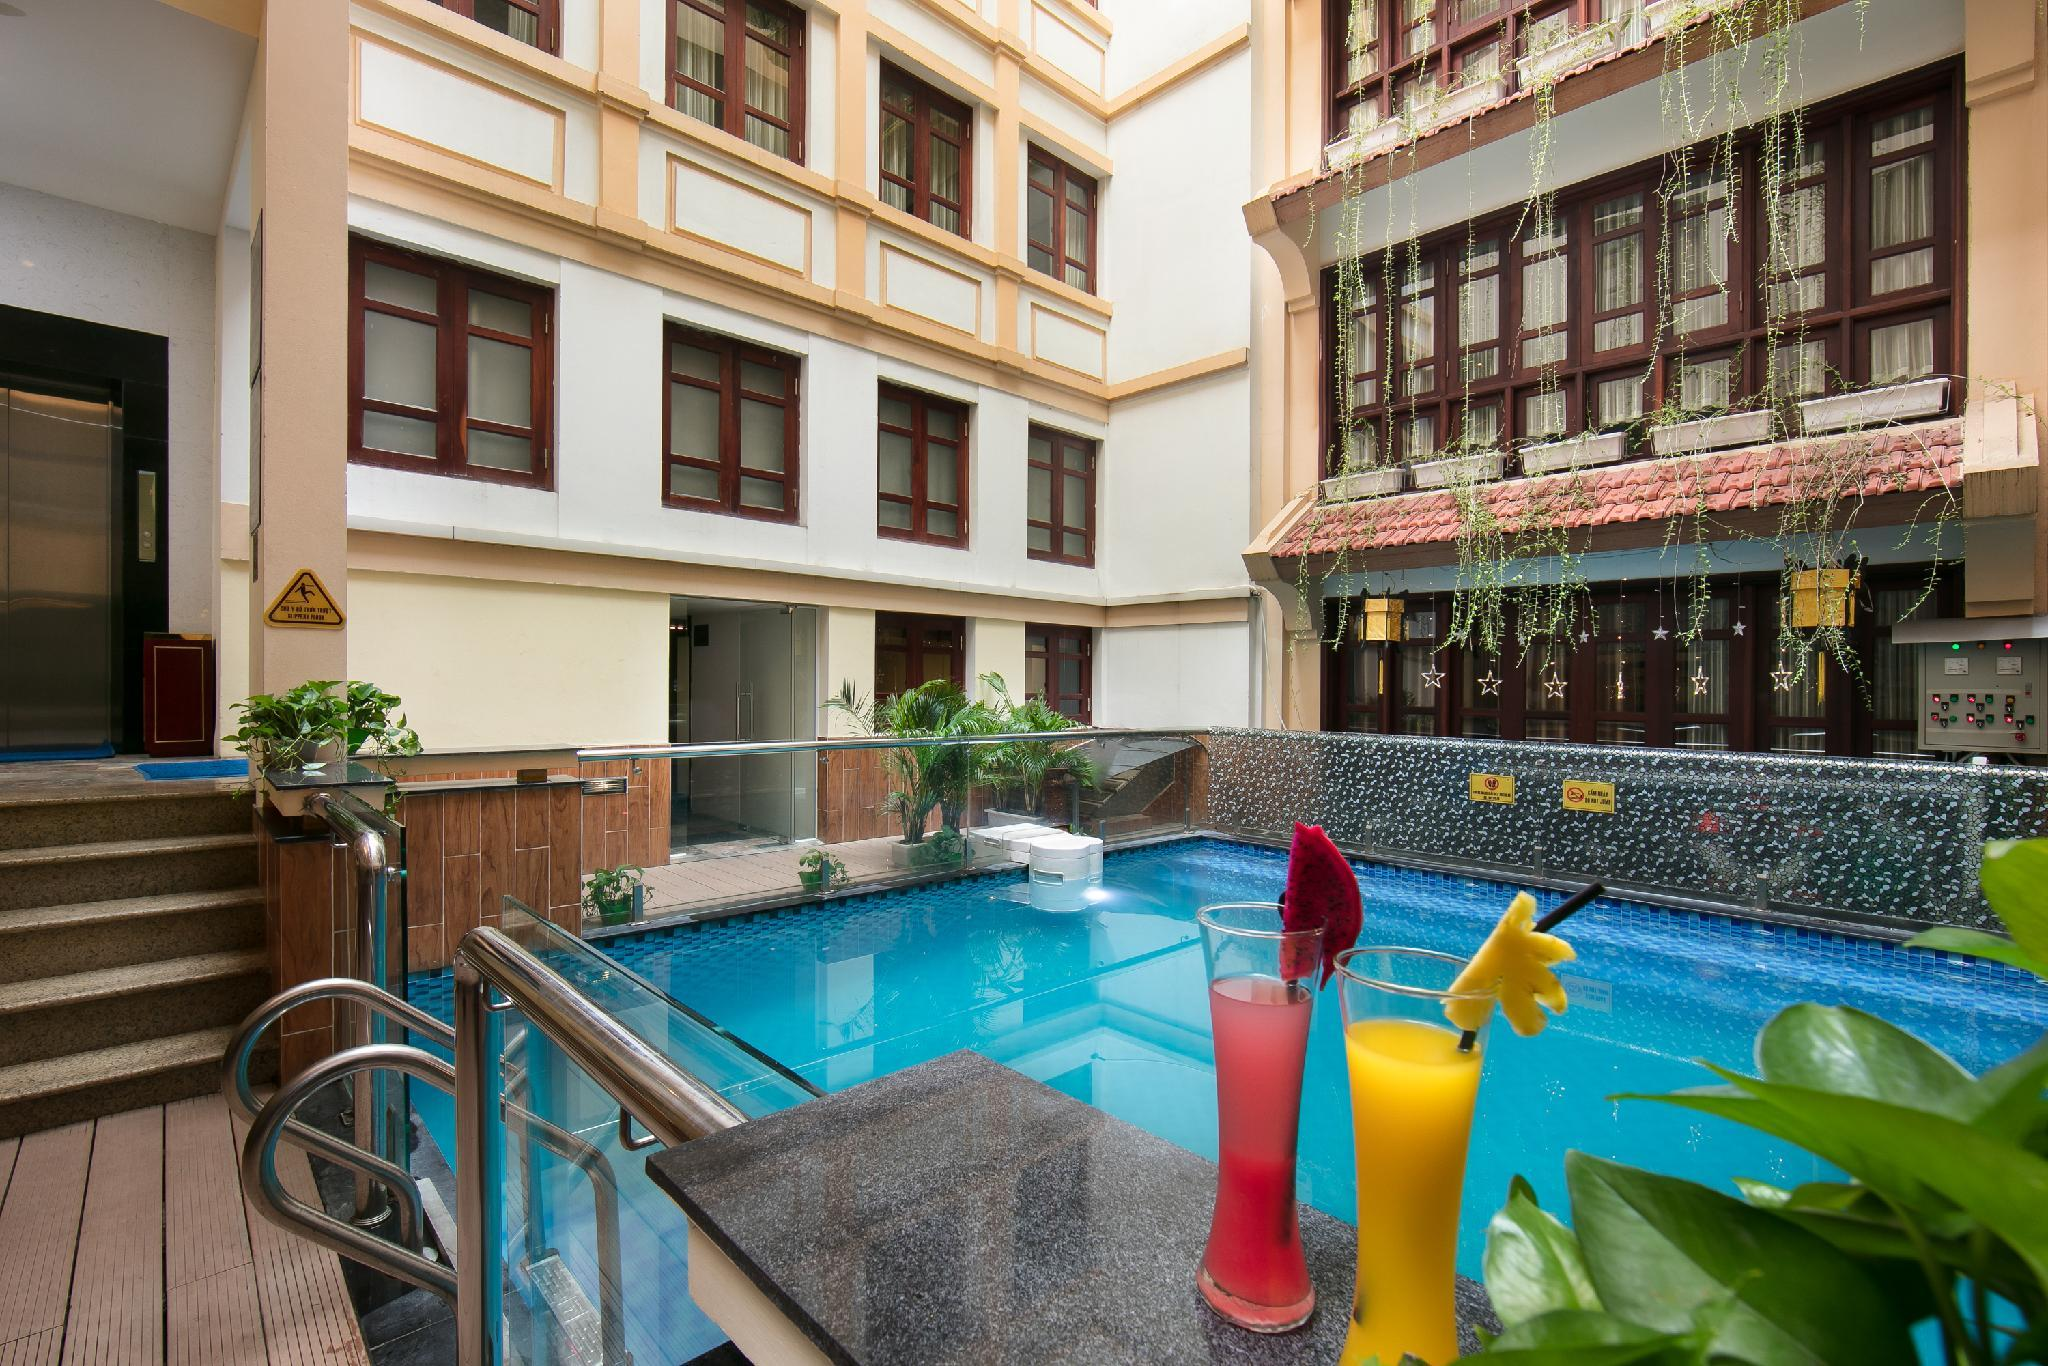 Hotel Goedkope Hanoi Nostalgia Hotel Spa In Vietnam Room Deals Photos Reviews